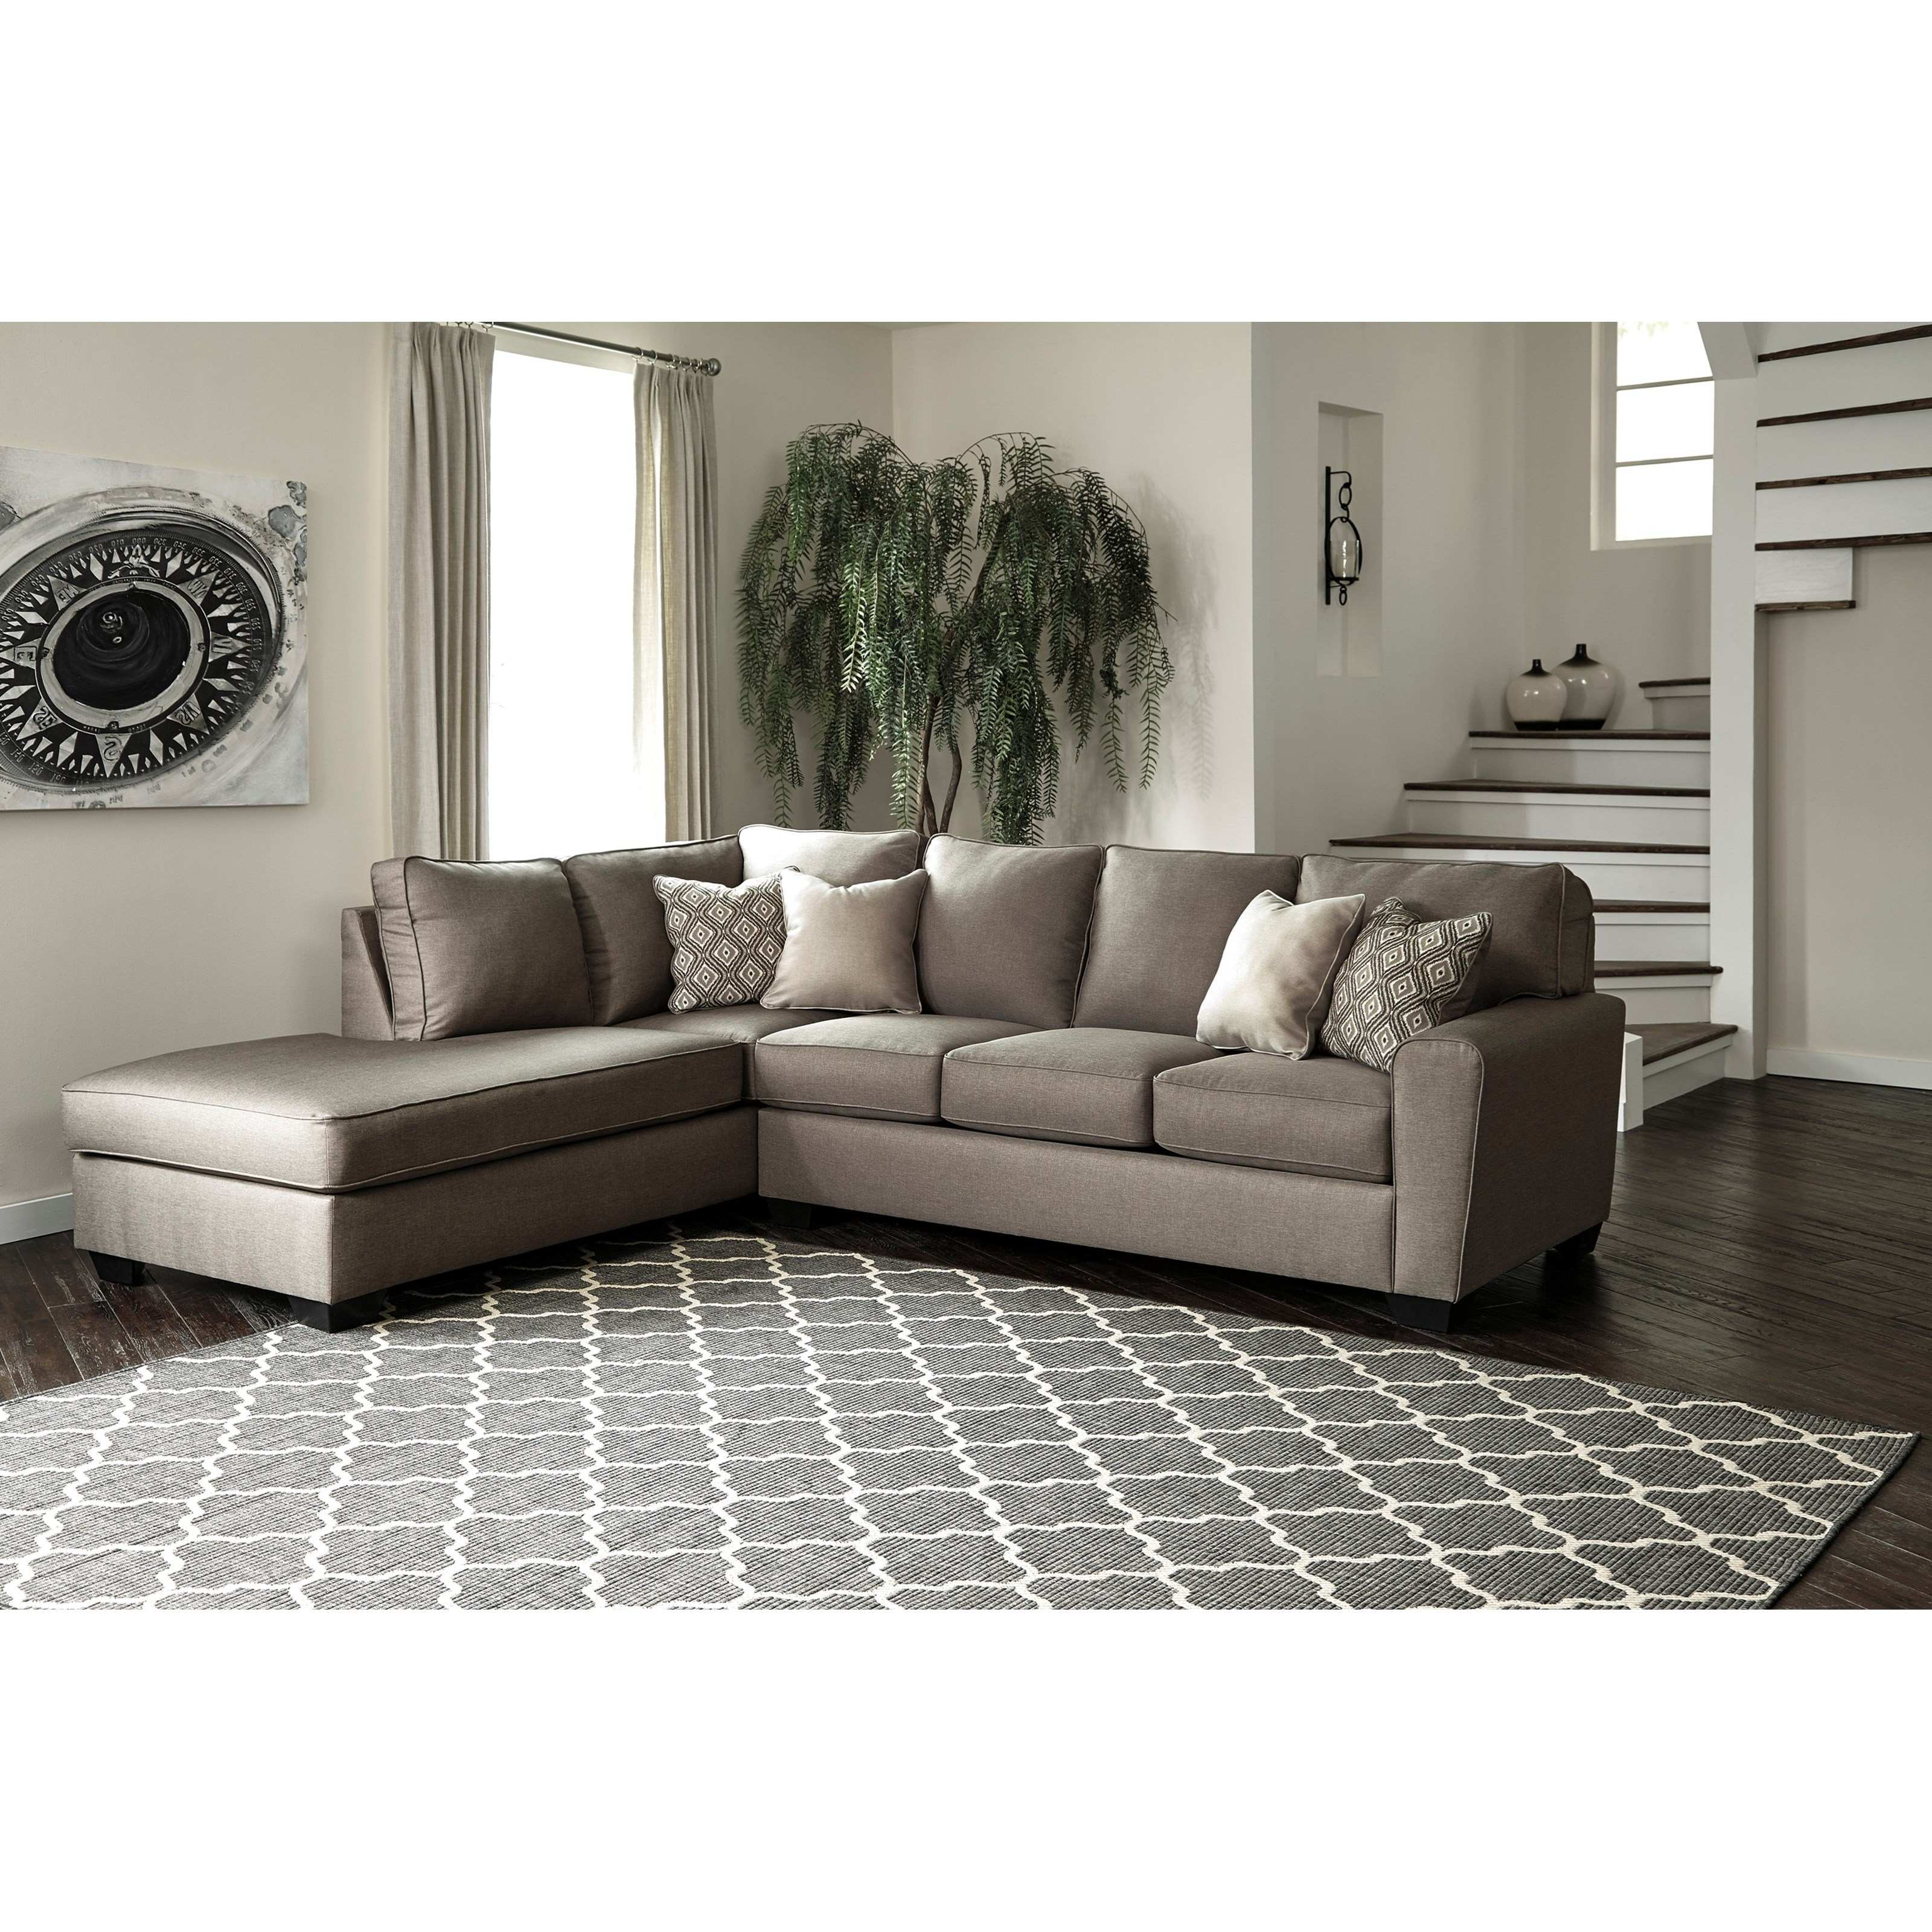 Modern Sectional Sofas Houston: Benchcraft Calicho Contemporary Sectional With Left Chaise